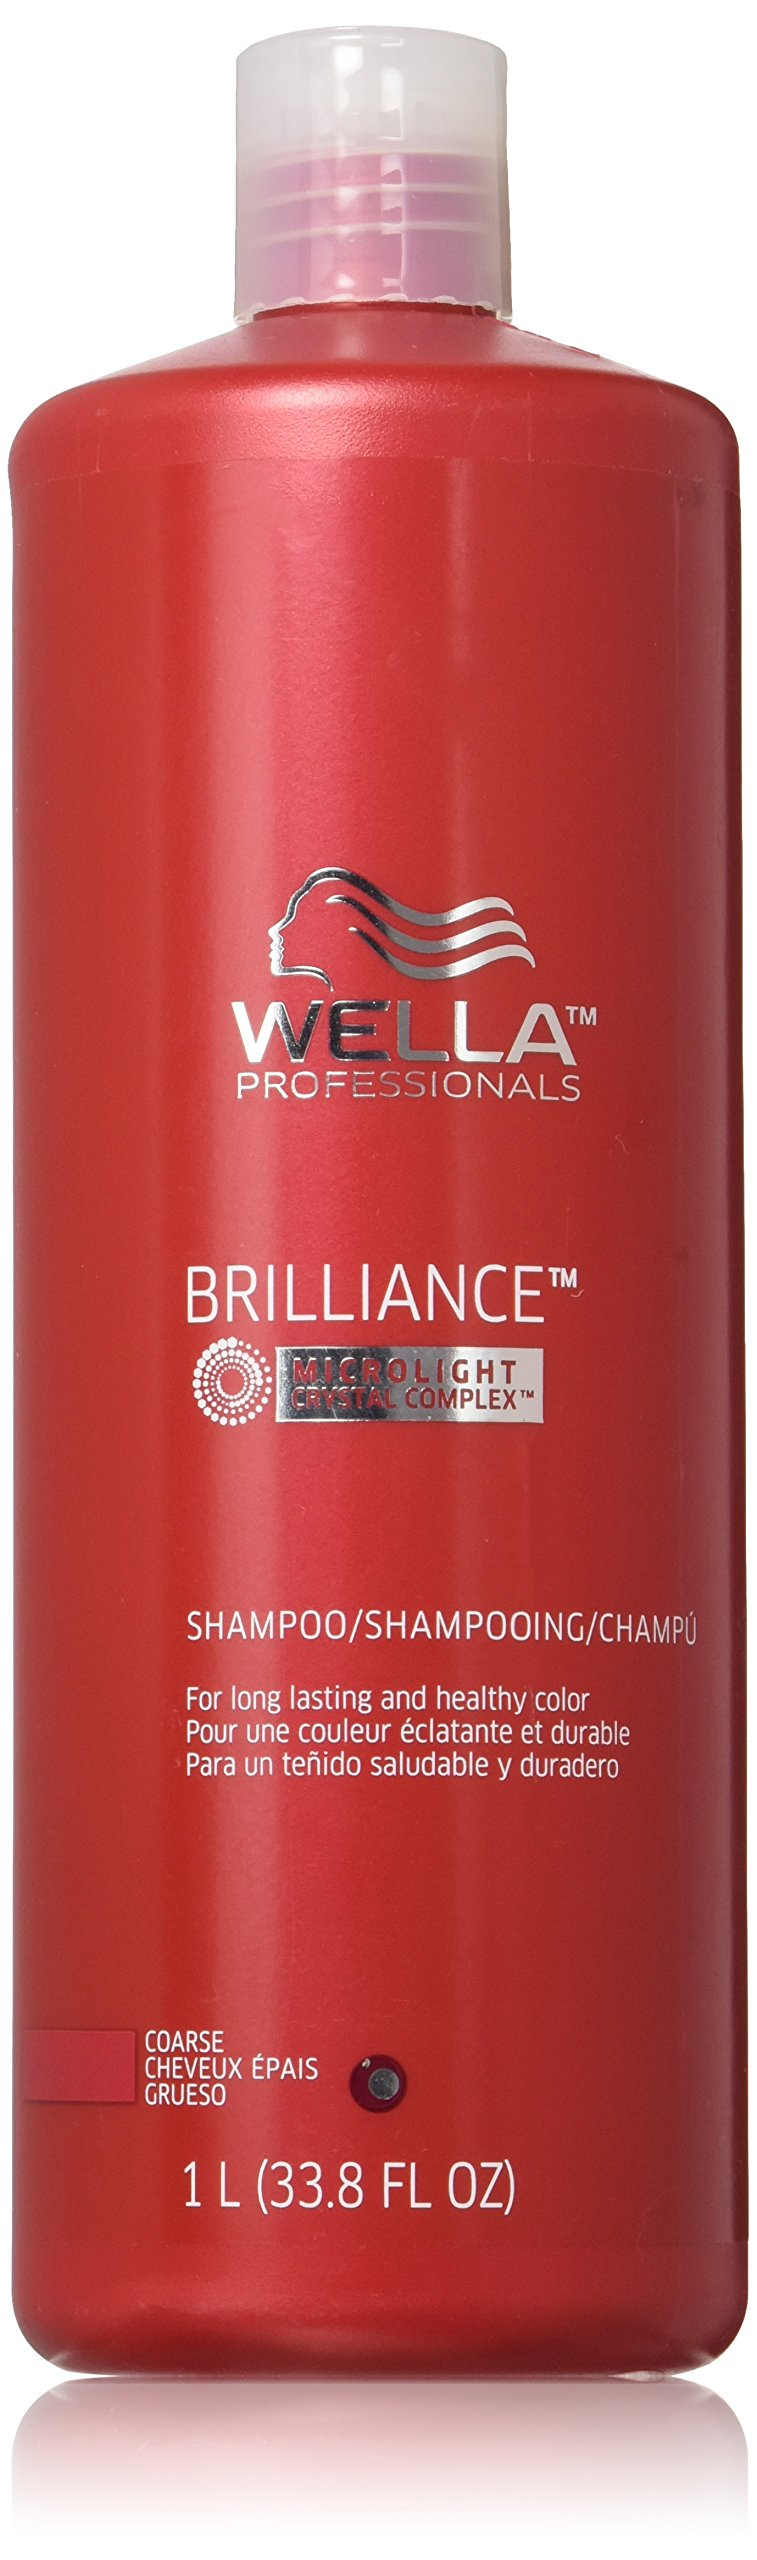 Wella Brilliance Shampoo for Long Lasting and Healthy Color, 33.8 Ounce by Wella